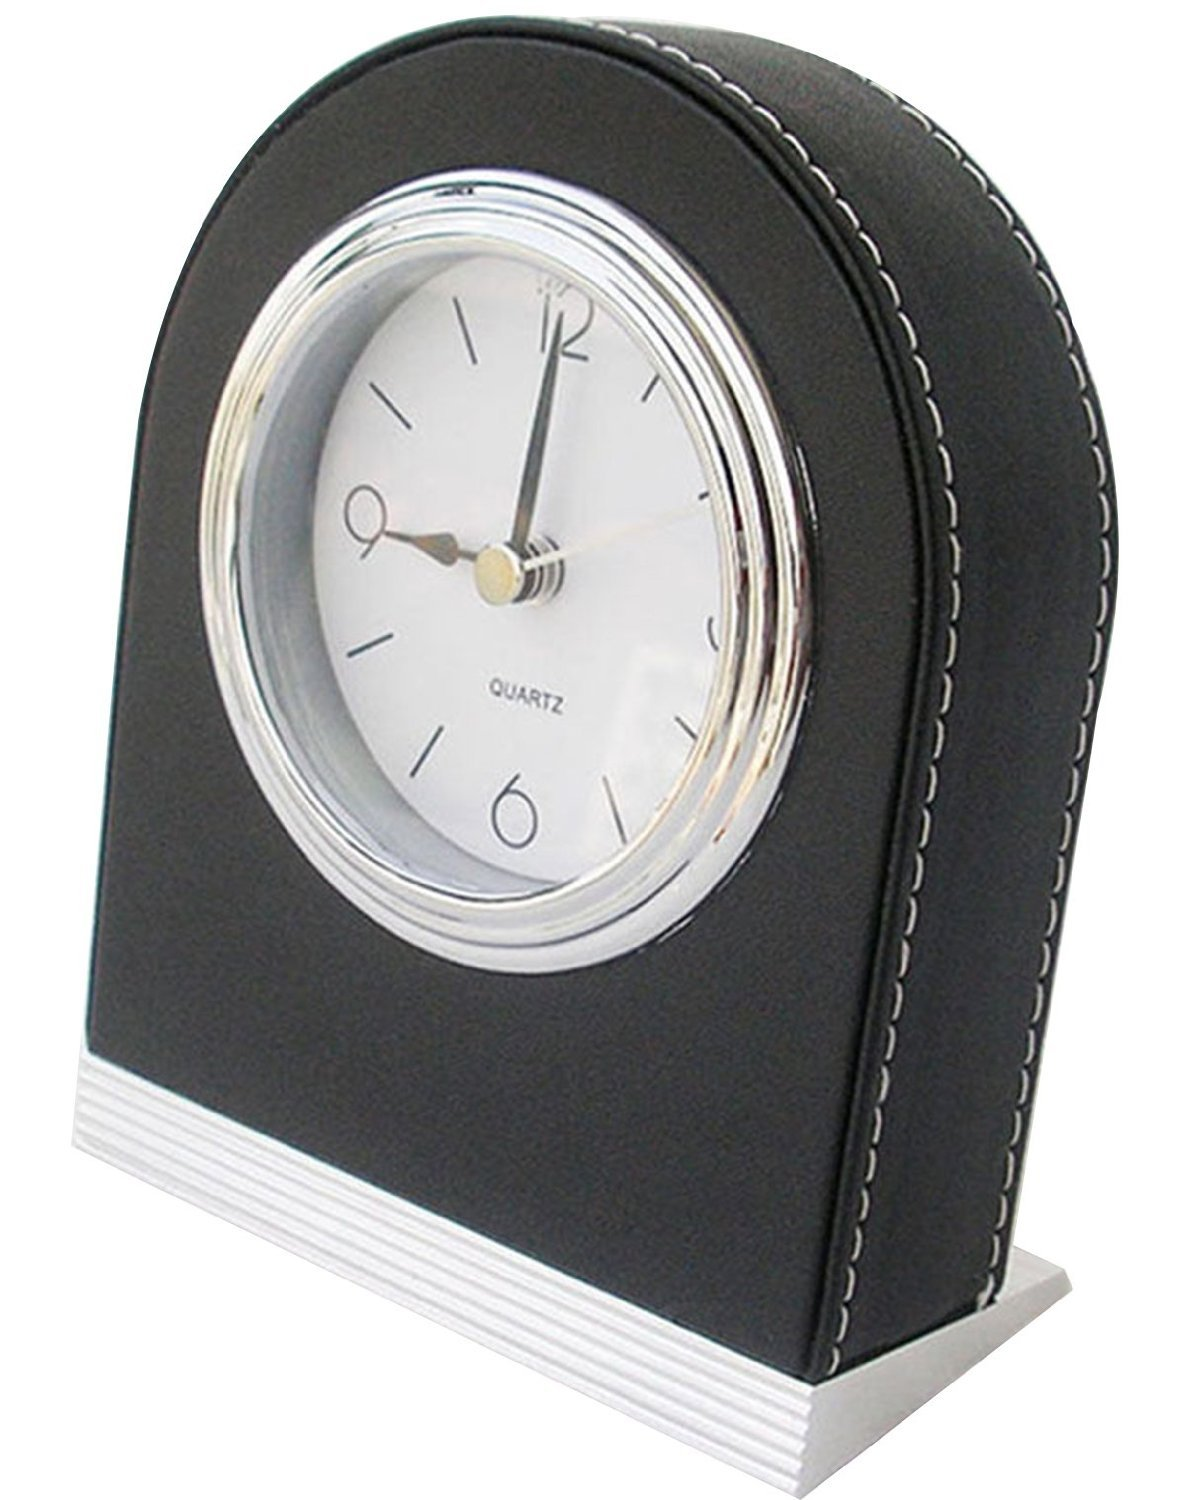 KINGFOM Durable Leatherette Snooze Alarm Clork White Dial with Nightlight for Home Hotel